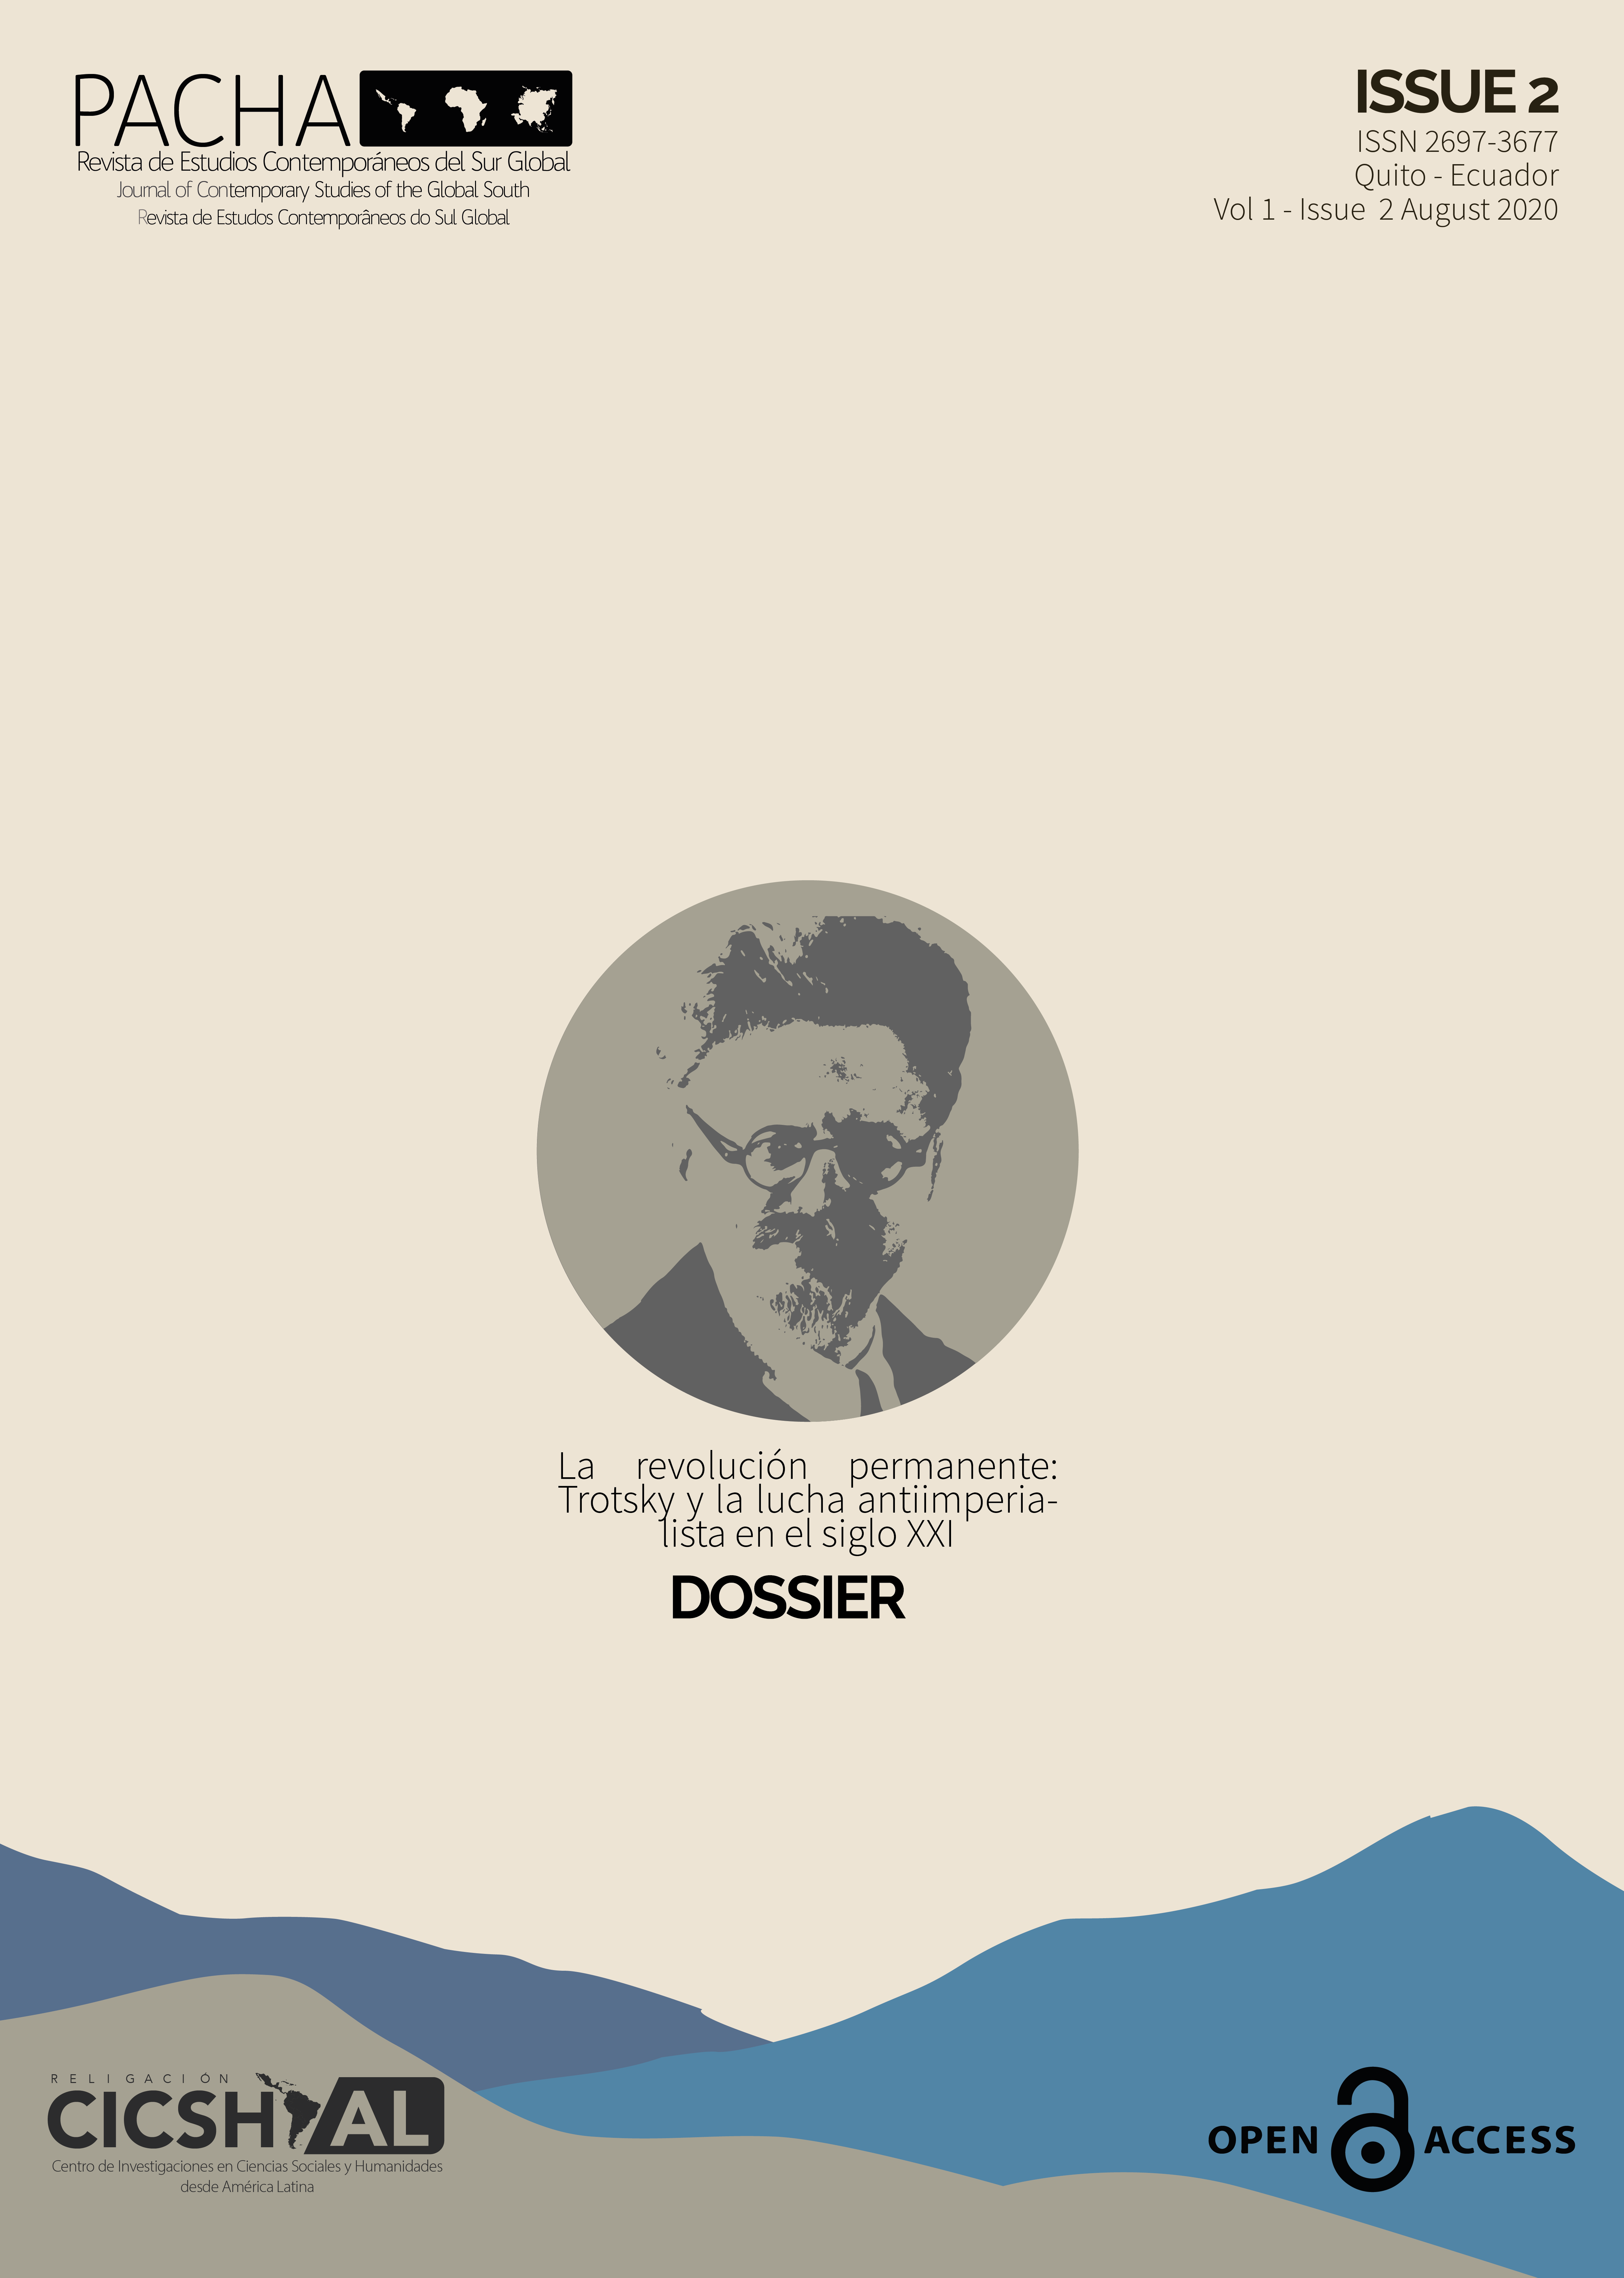 Dossier. The permanent revolution: Trotsky and the anti-imperialist struggle in the 21st century